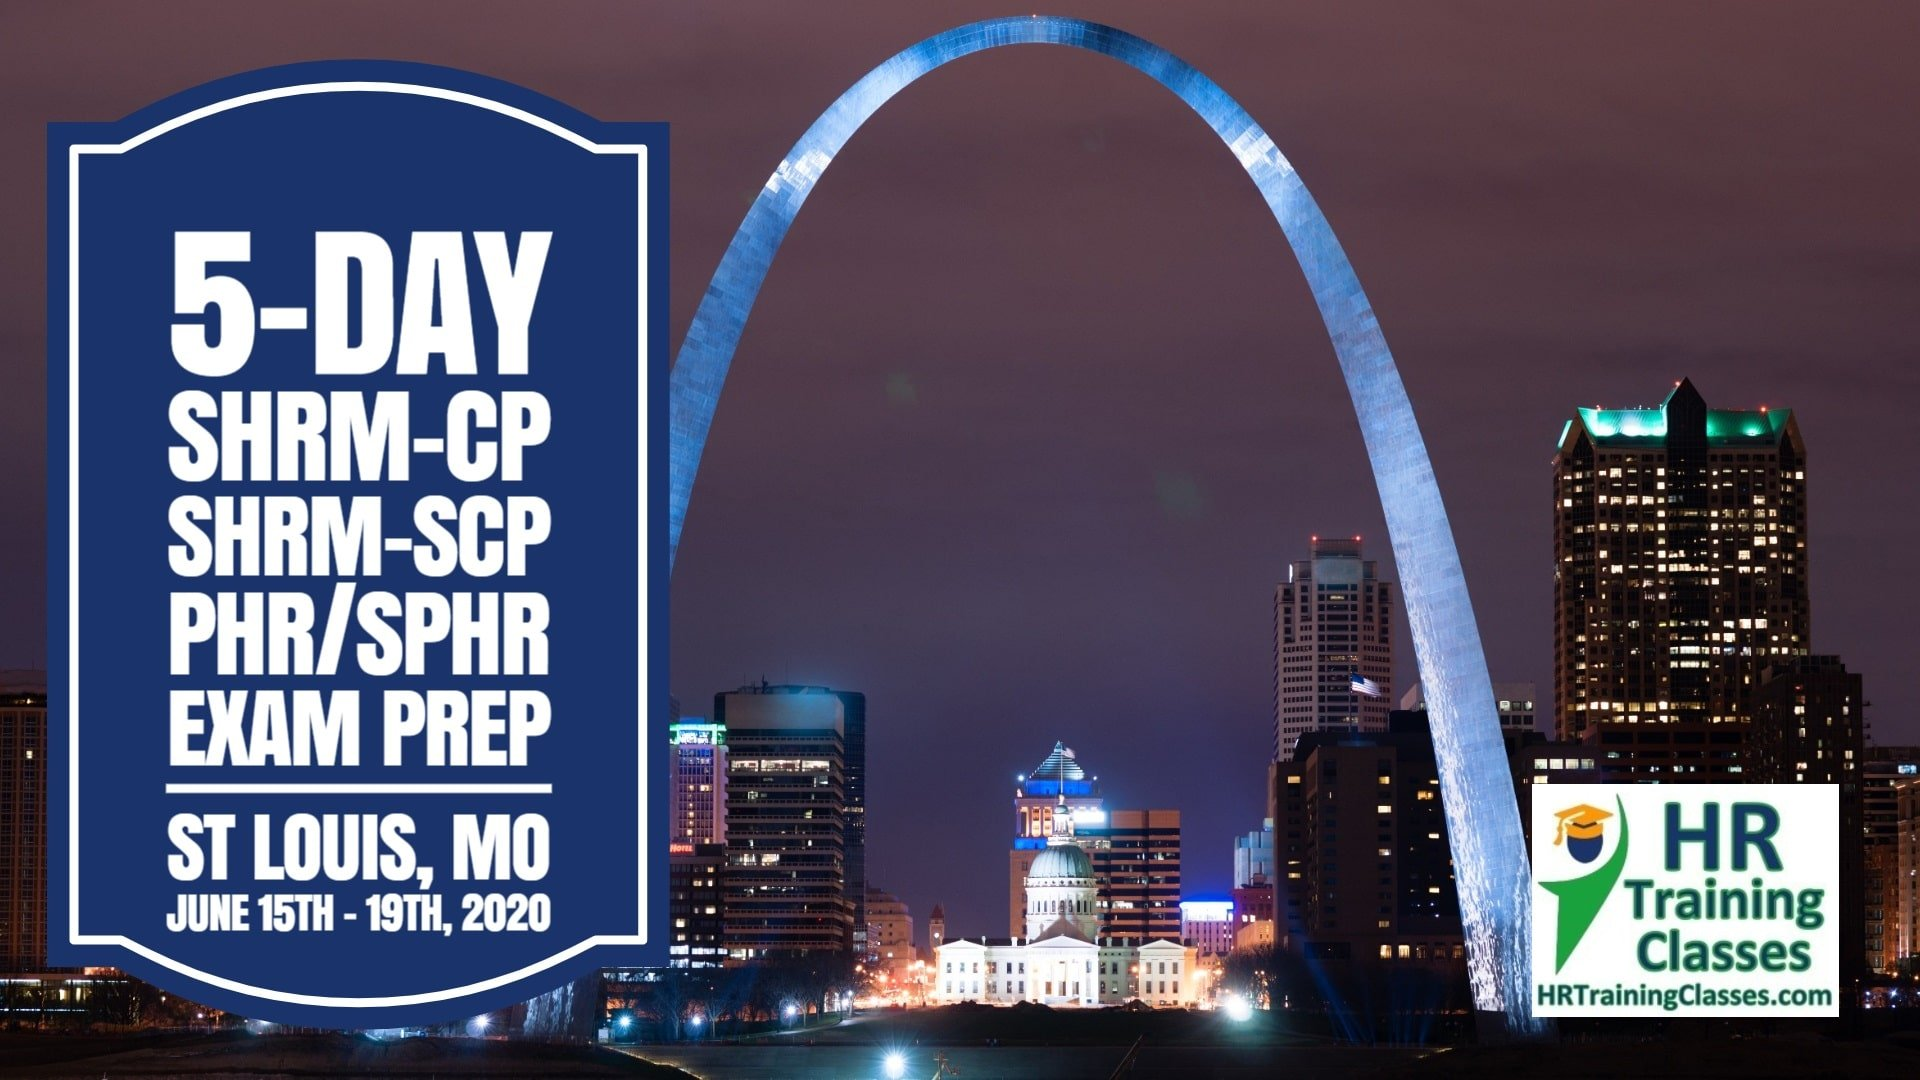 5 Day SHRM-CP, SHRM-SCP, PHR & SPHR Exam Prep Boot Camp in St Louis (Starting 6-15-2020)